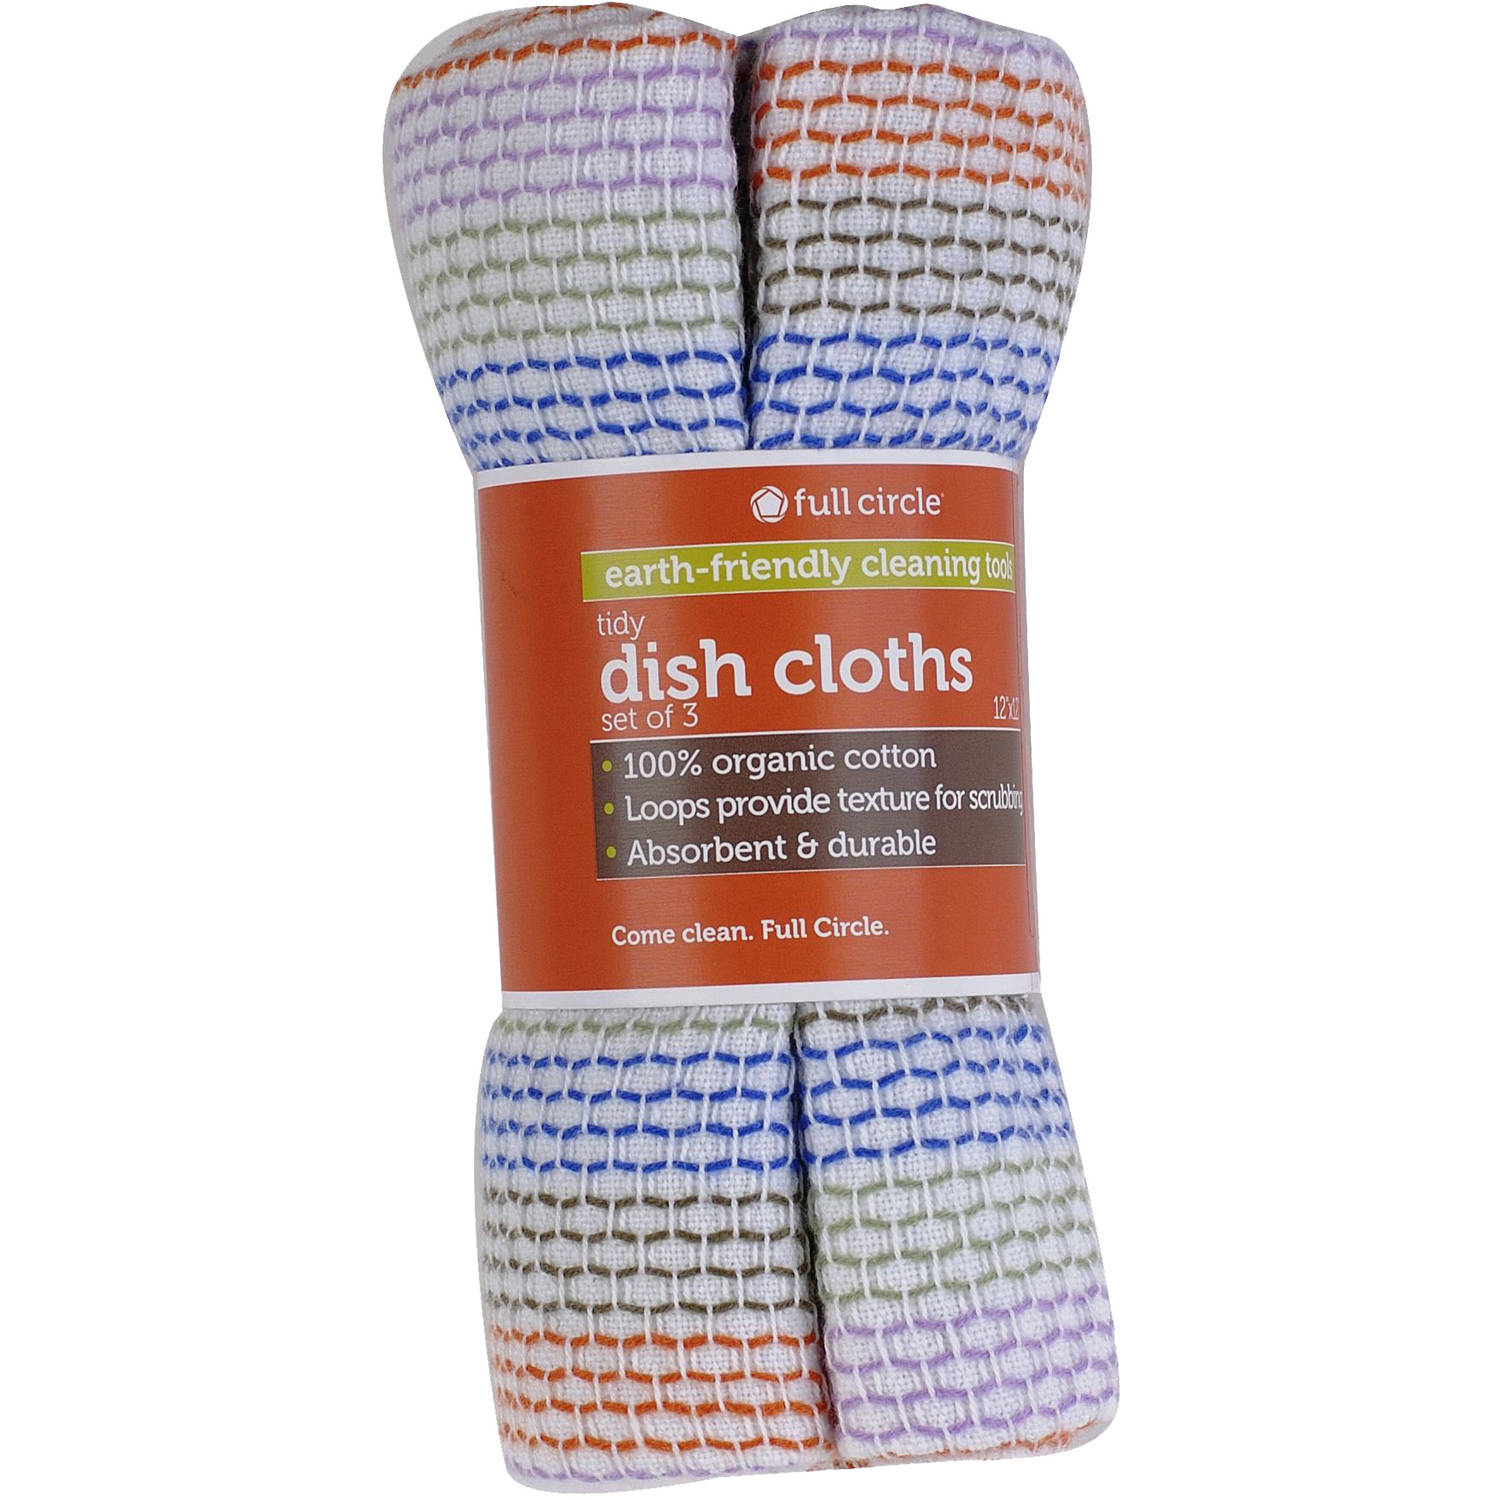 Full Circle Tidy Dish Cloths, FC10206, 3 count